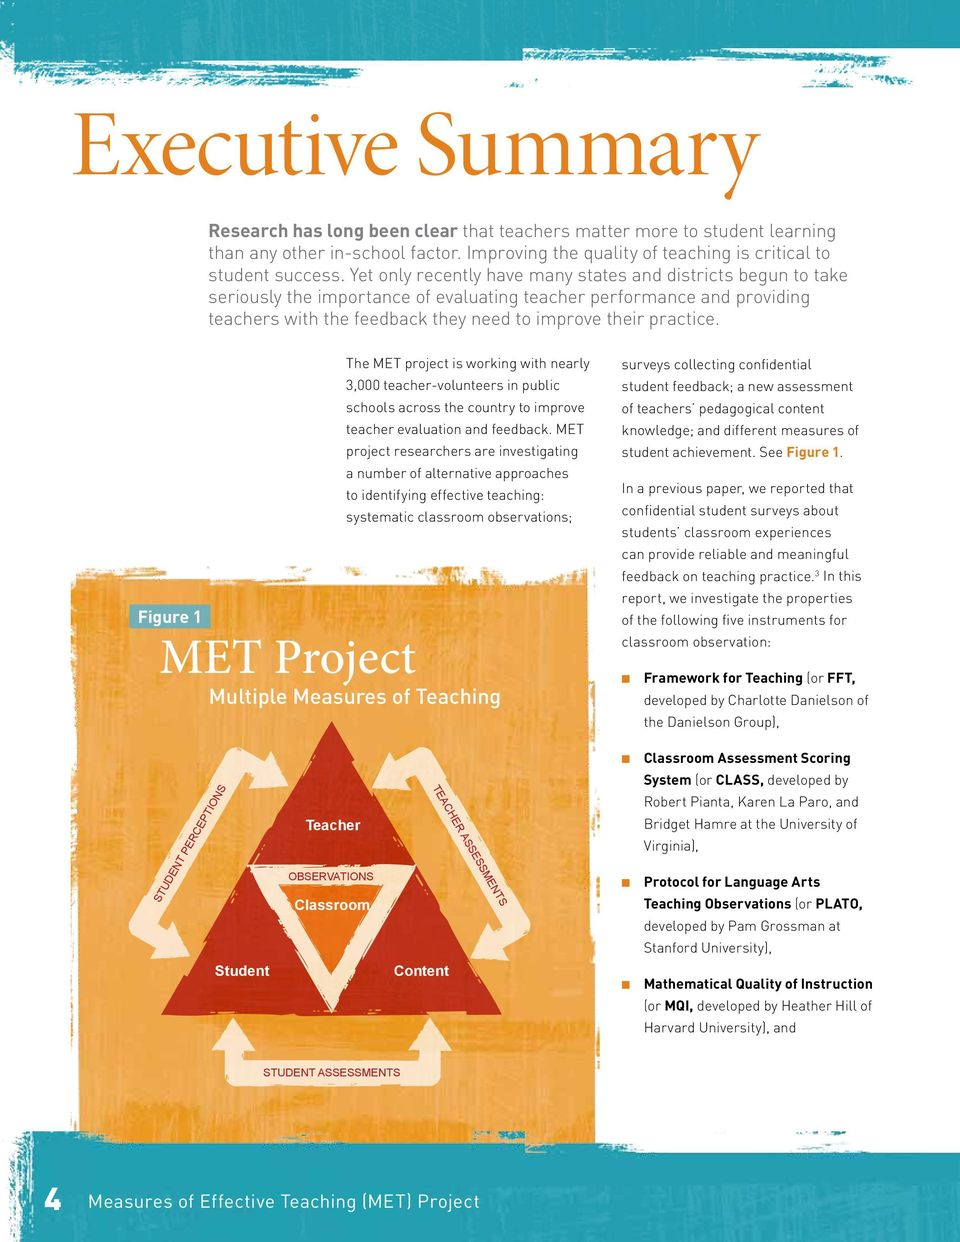 Figure 1 The MET project is working with nearly 3,000 teacher-volunteers in public schools across the country to improve teacher evaluation and feedback.